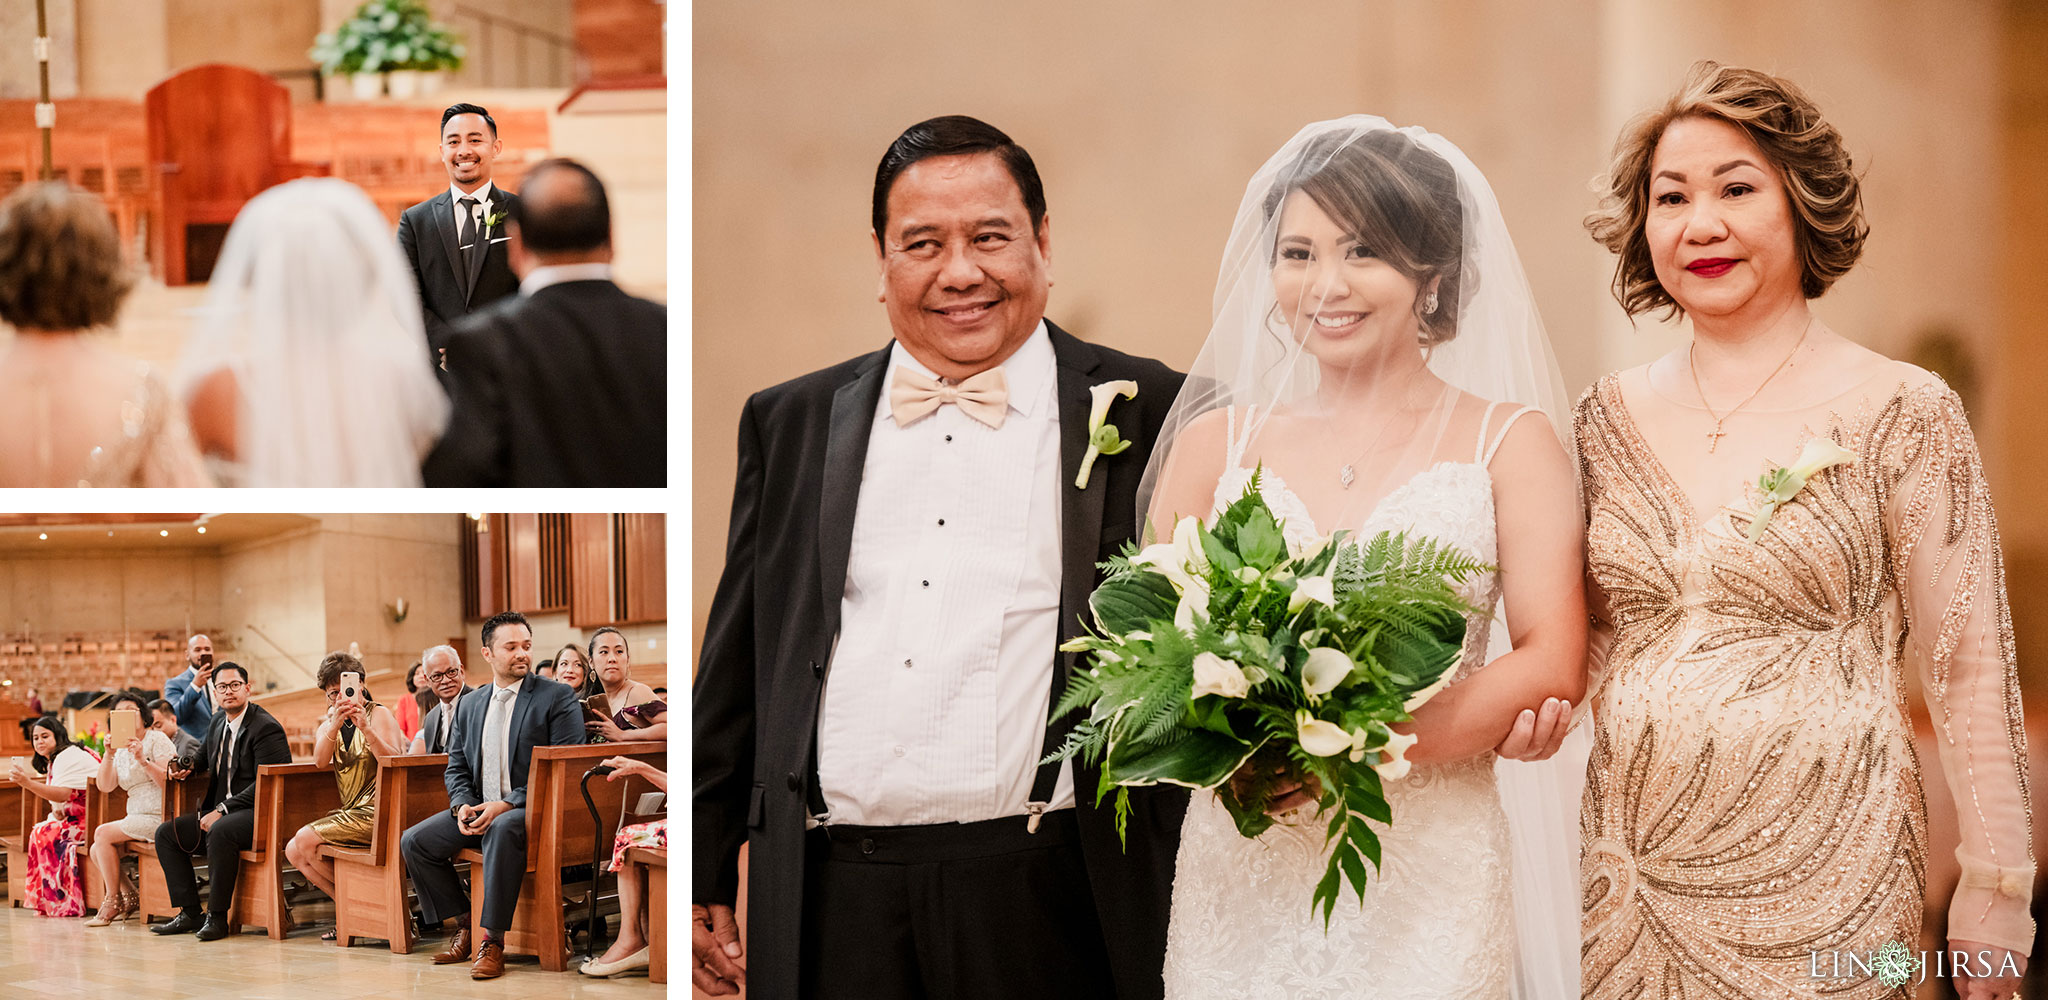 021 cathedral of our lady of angels los angeles wedding ceremony photography